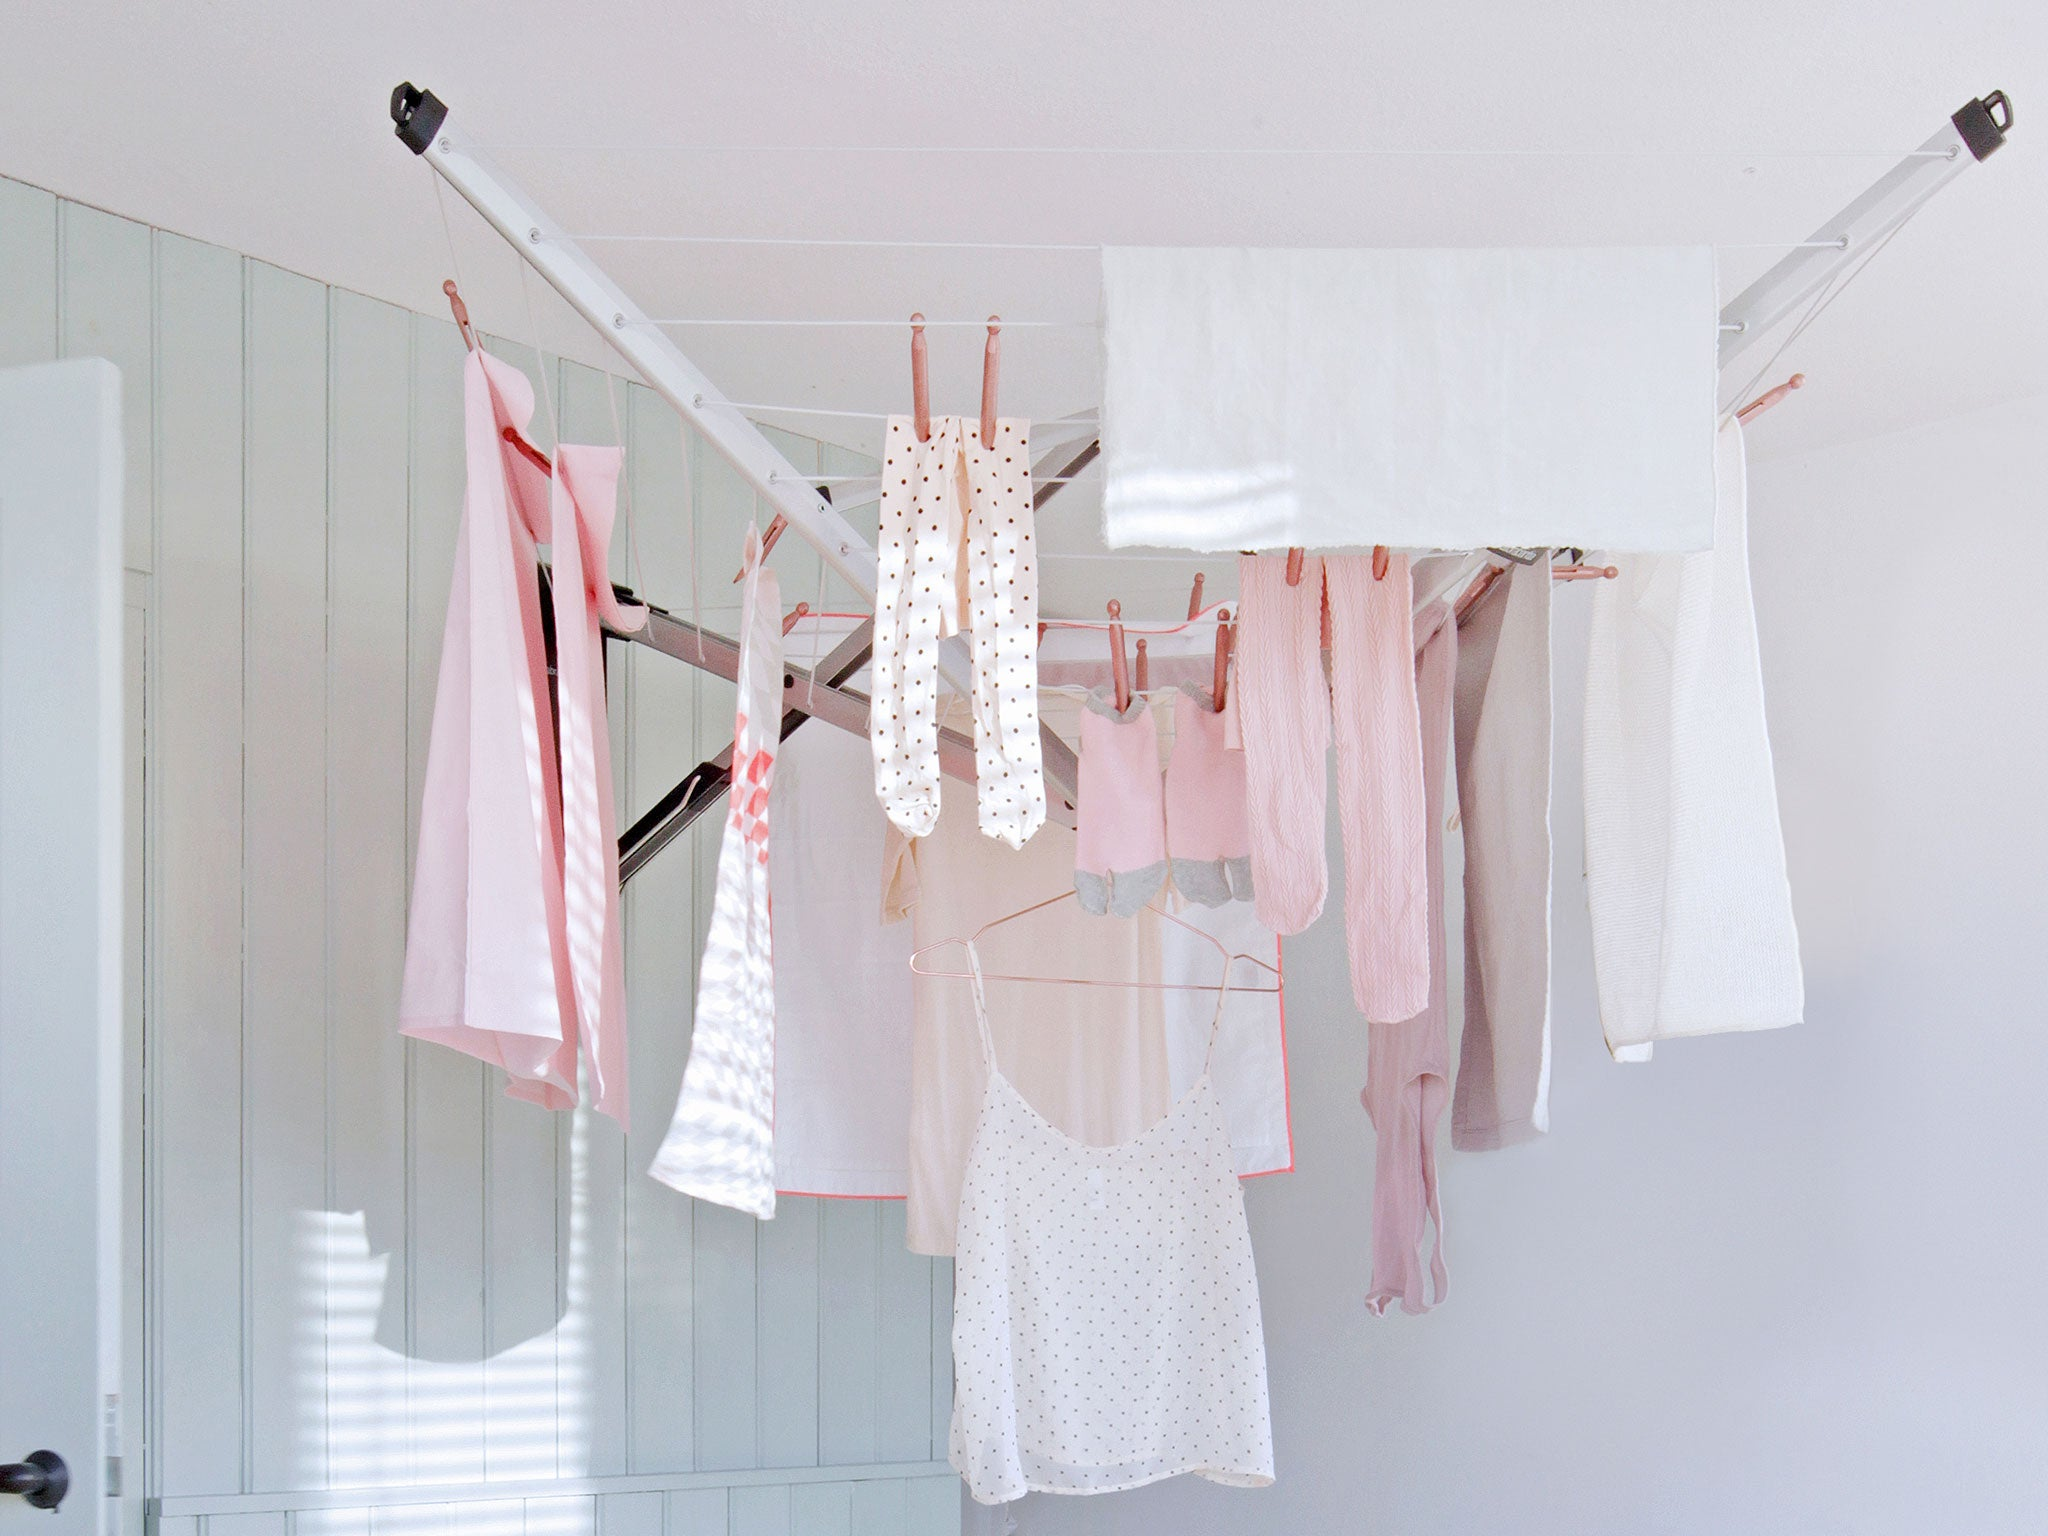 10 Best Clothes Drying Racks The Independent